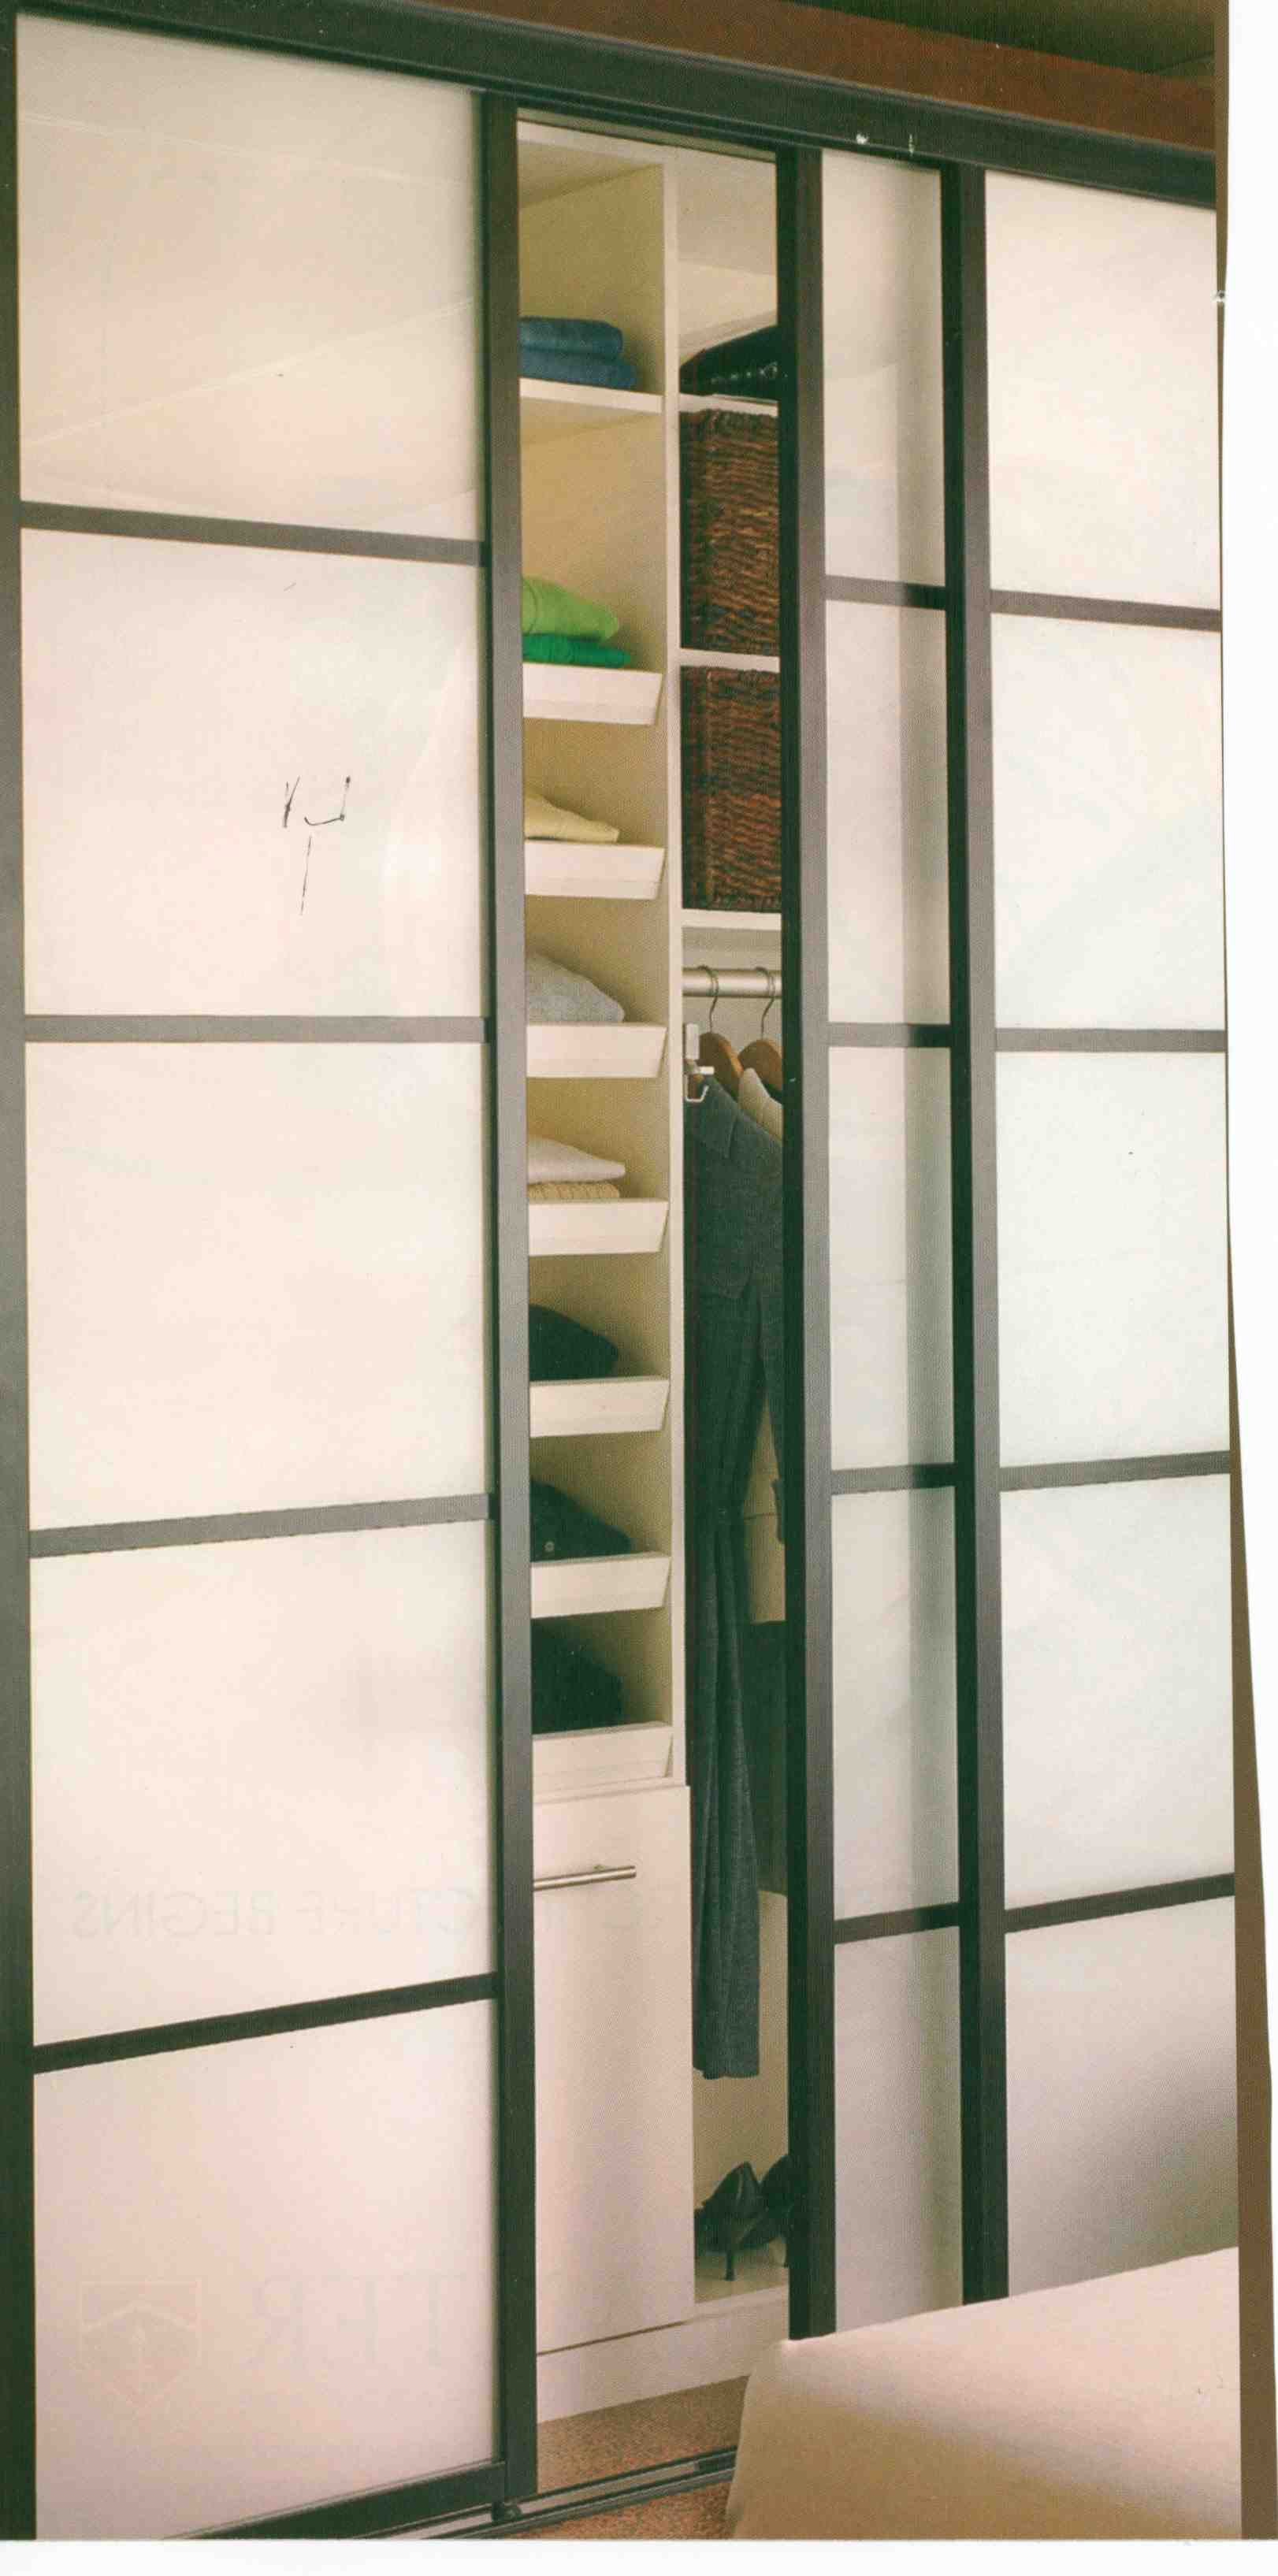 sliding closet doors if mirrored this could be a diy project use frosted contact